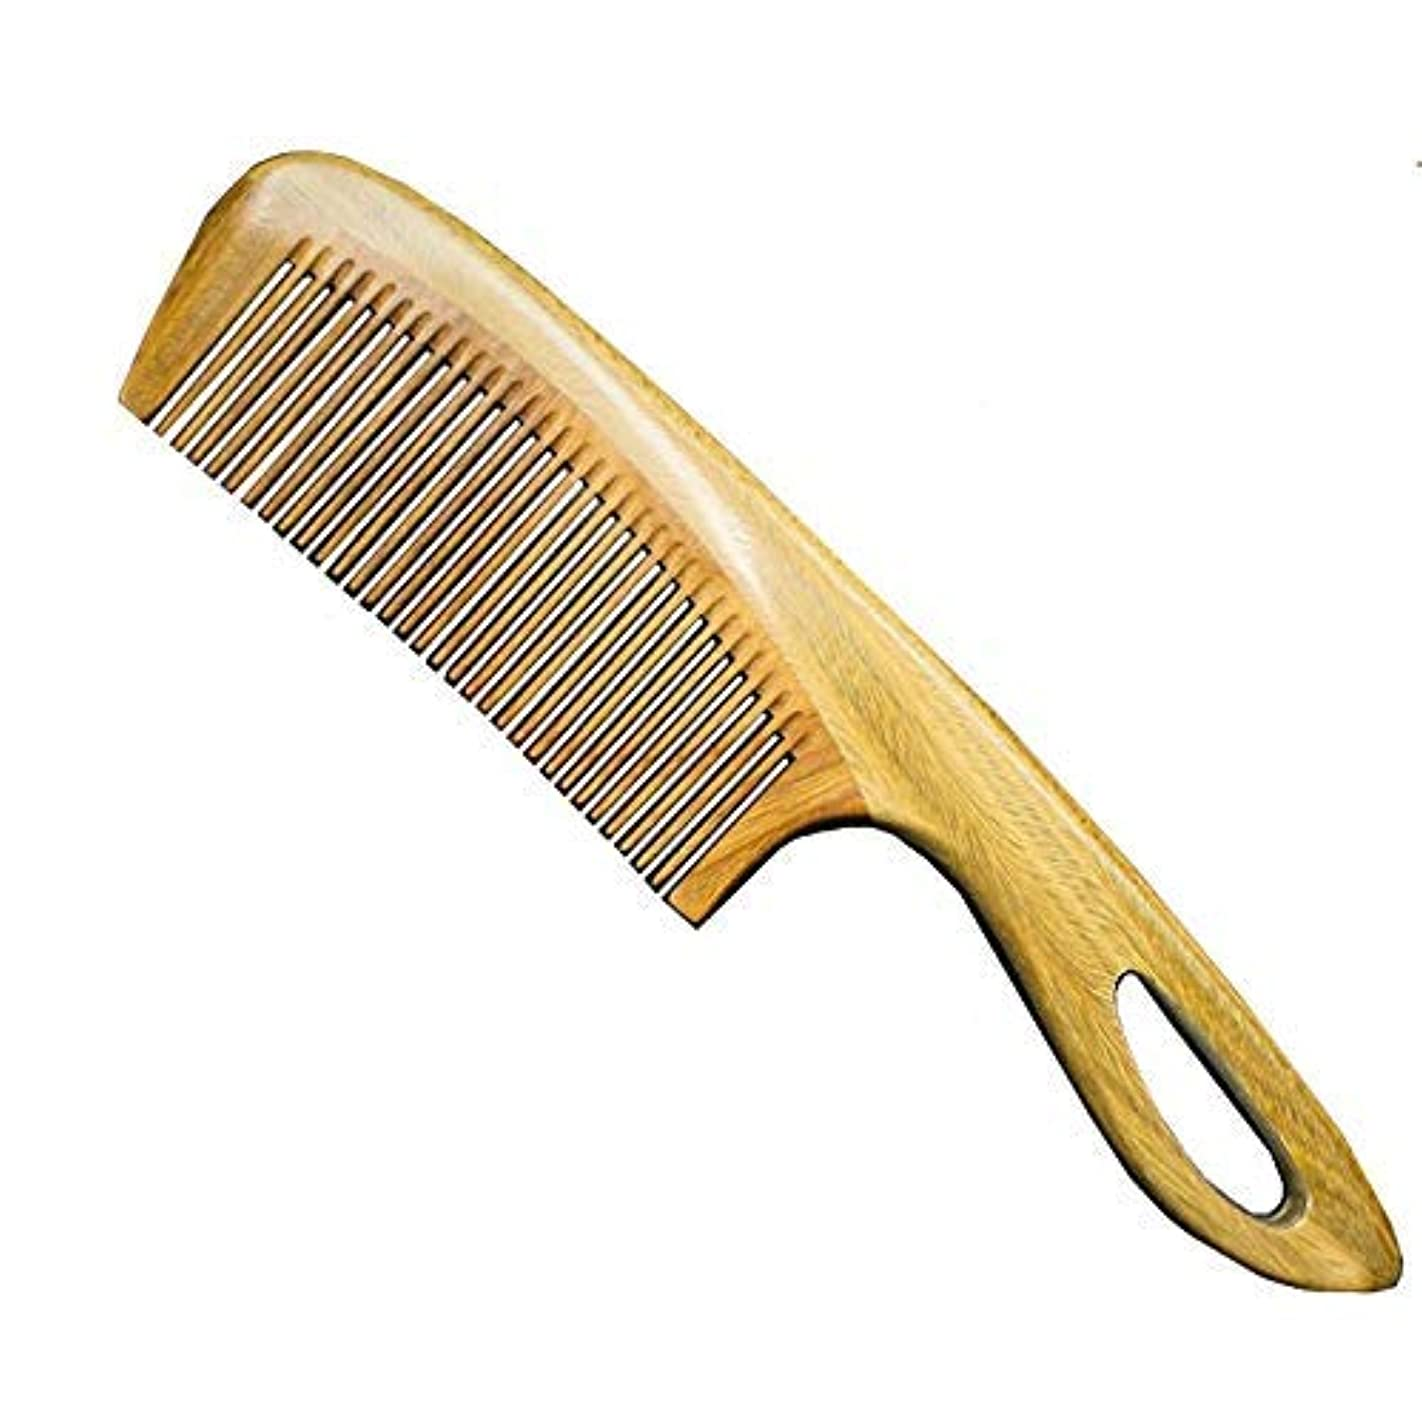 Natural Sandalwood Wood Comb - No Static Fine Tooth Hair Comb - Natural Aroma, Handmade, Massage Head, Hair Care...